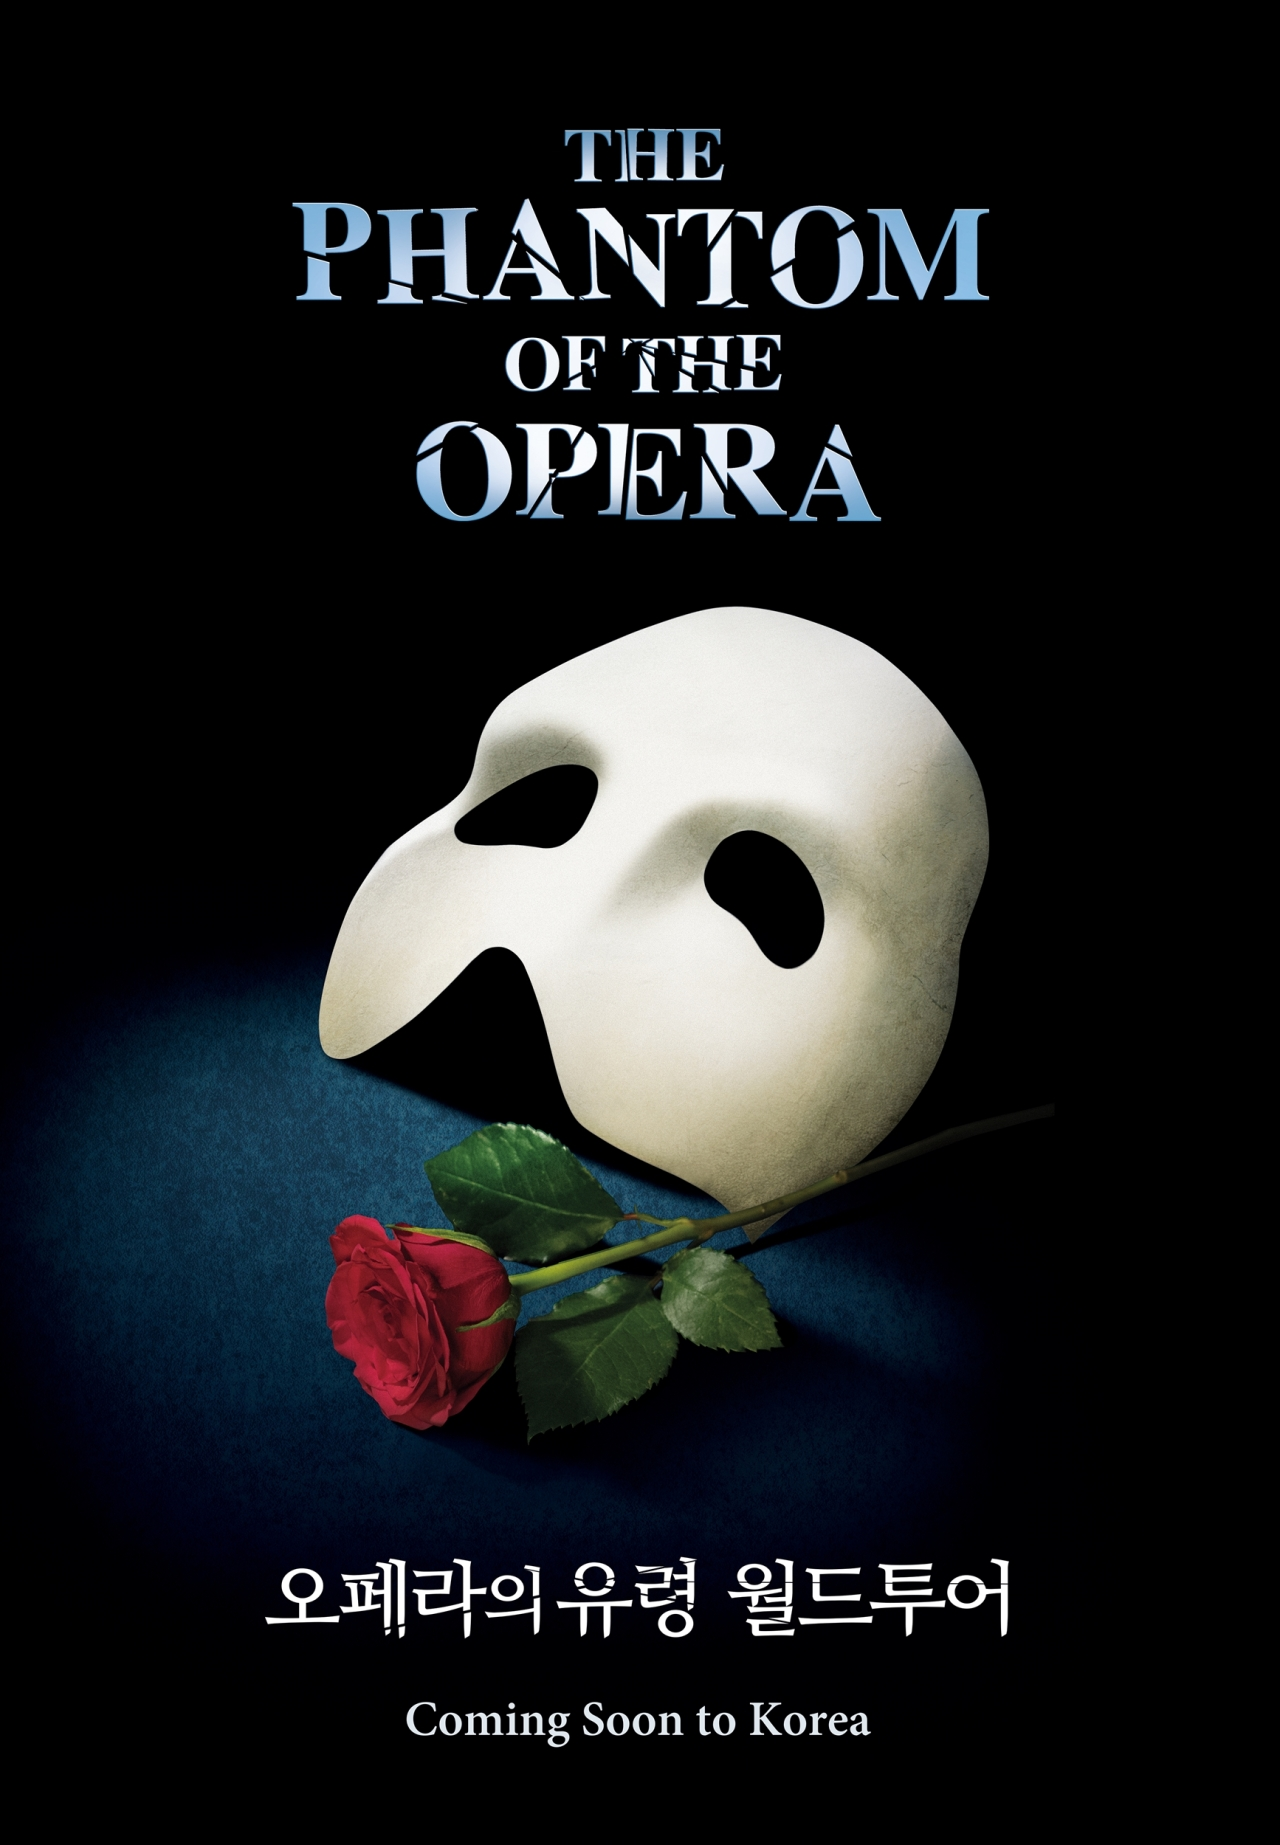 """The poster for """"The Phantom of the Opera"""" / S&Co."""